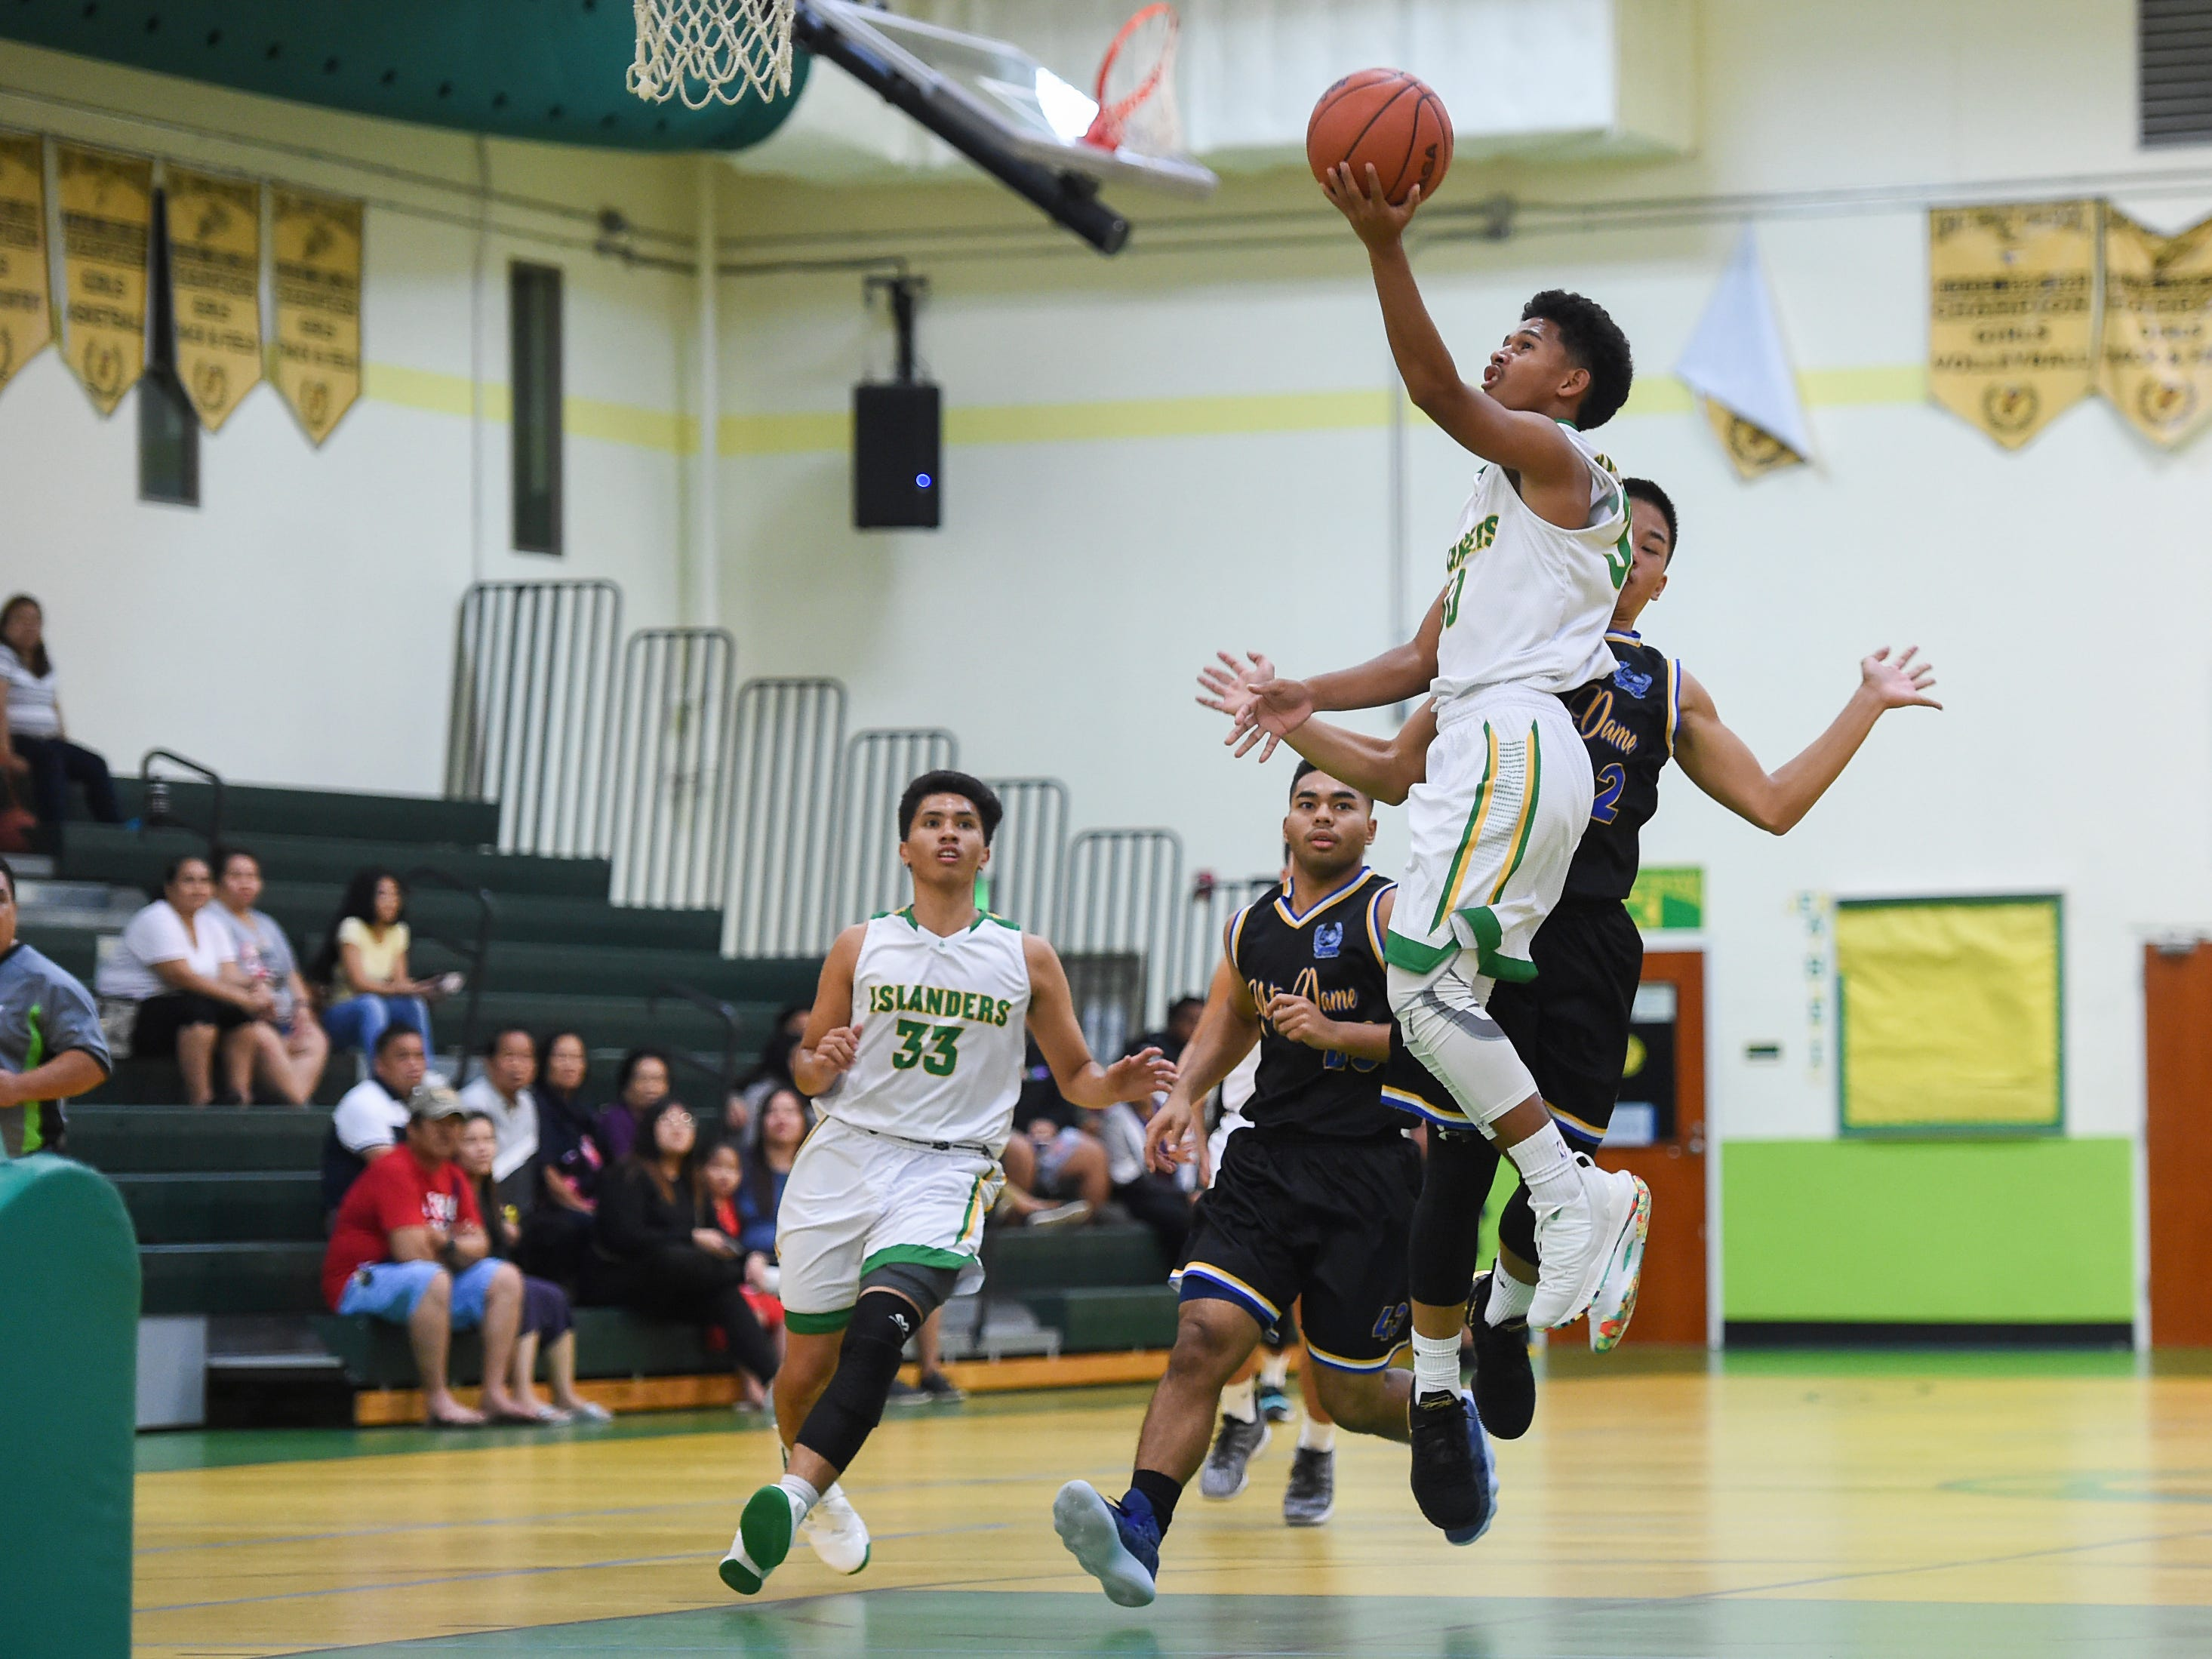 Jeremiah Kintoki drives to the basket for the John F. Kennedy Islanders during their Independent Interscholastic Athletic Association of Guam Boys' Basketball game against the Notre Dame Royals at the JFK High School Gym, Feb. 2, 2019.